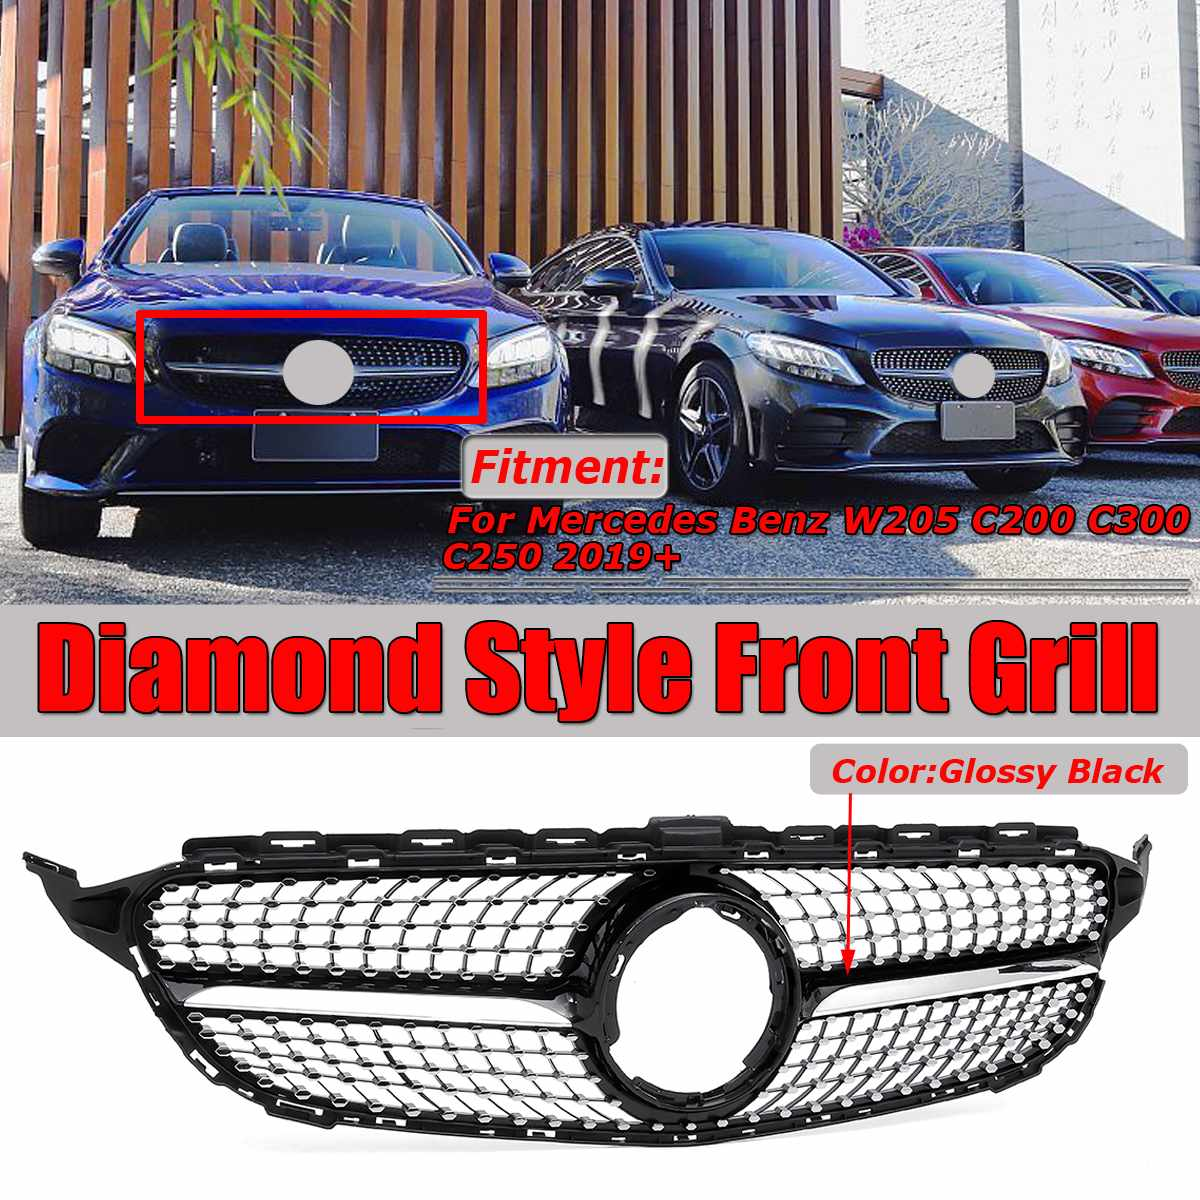 Diamond Style Car Front Grille Grill Cover Trim For Mercedes For Benz W205 C200 C300 C250